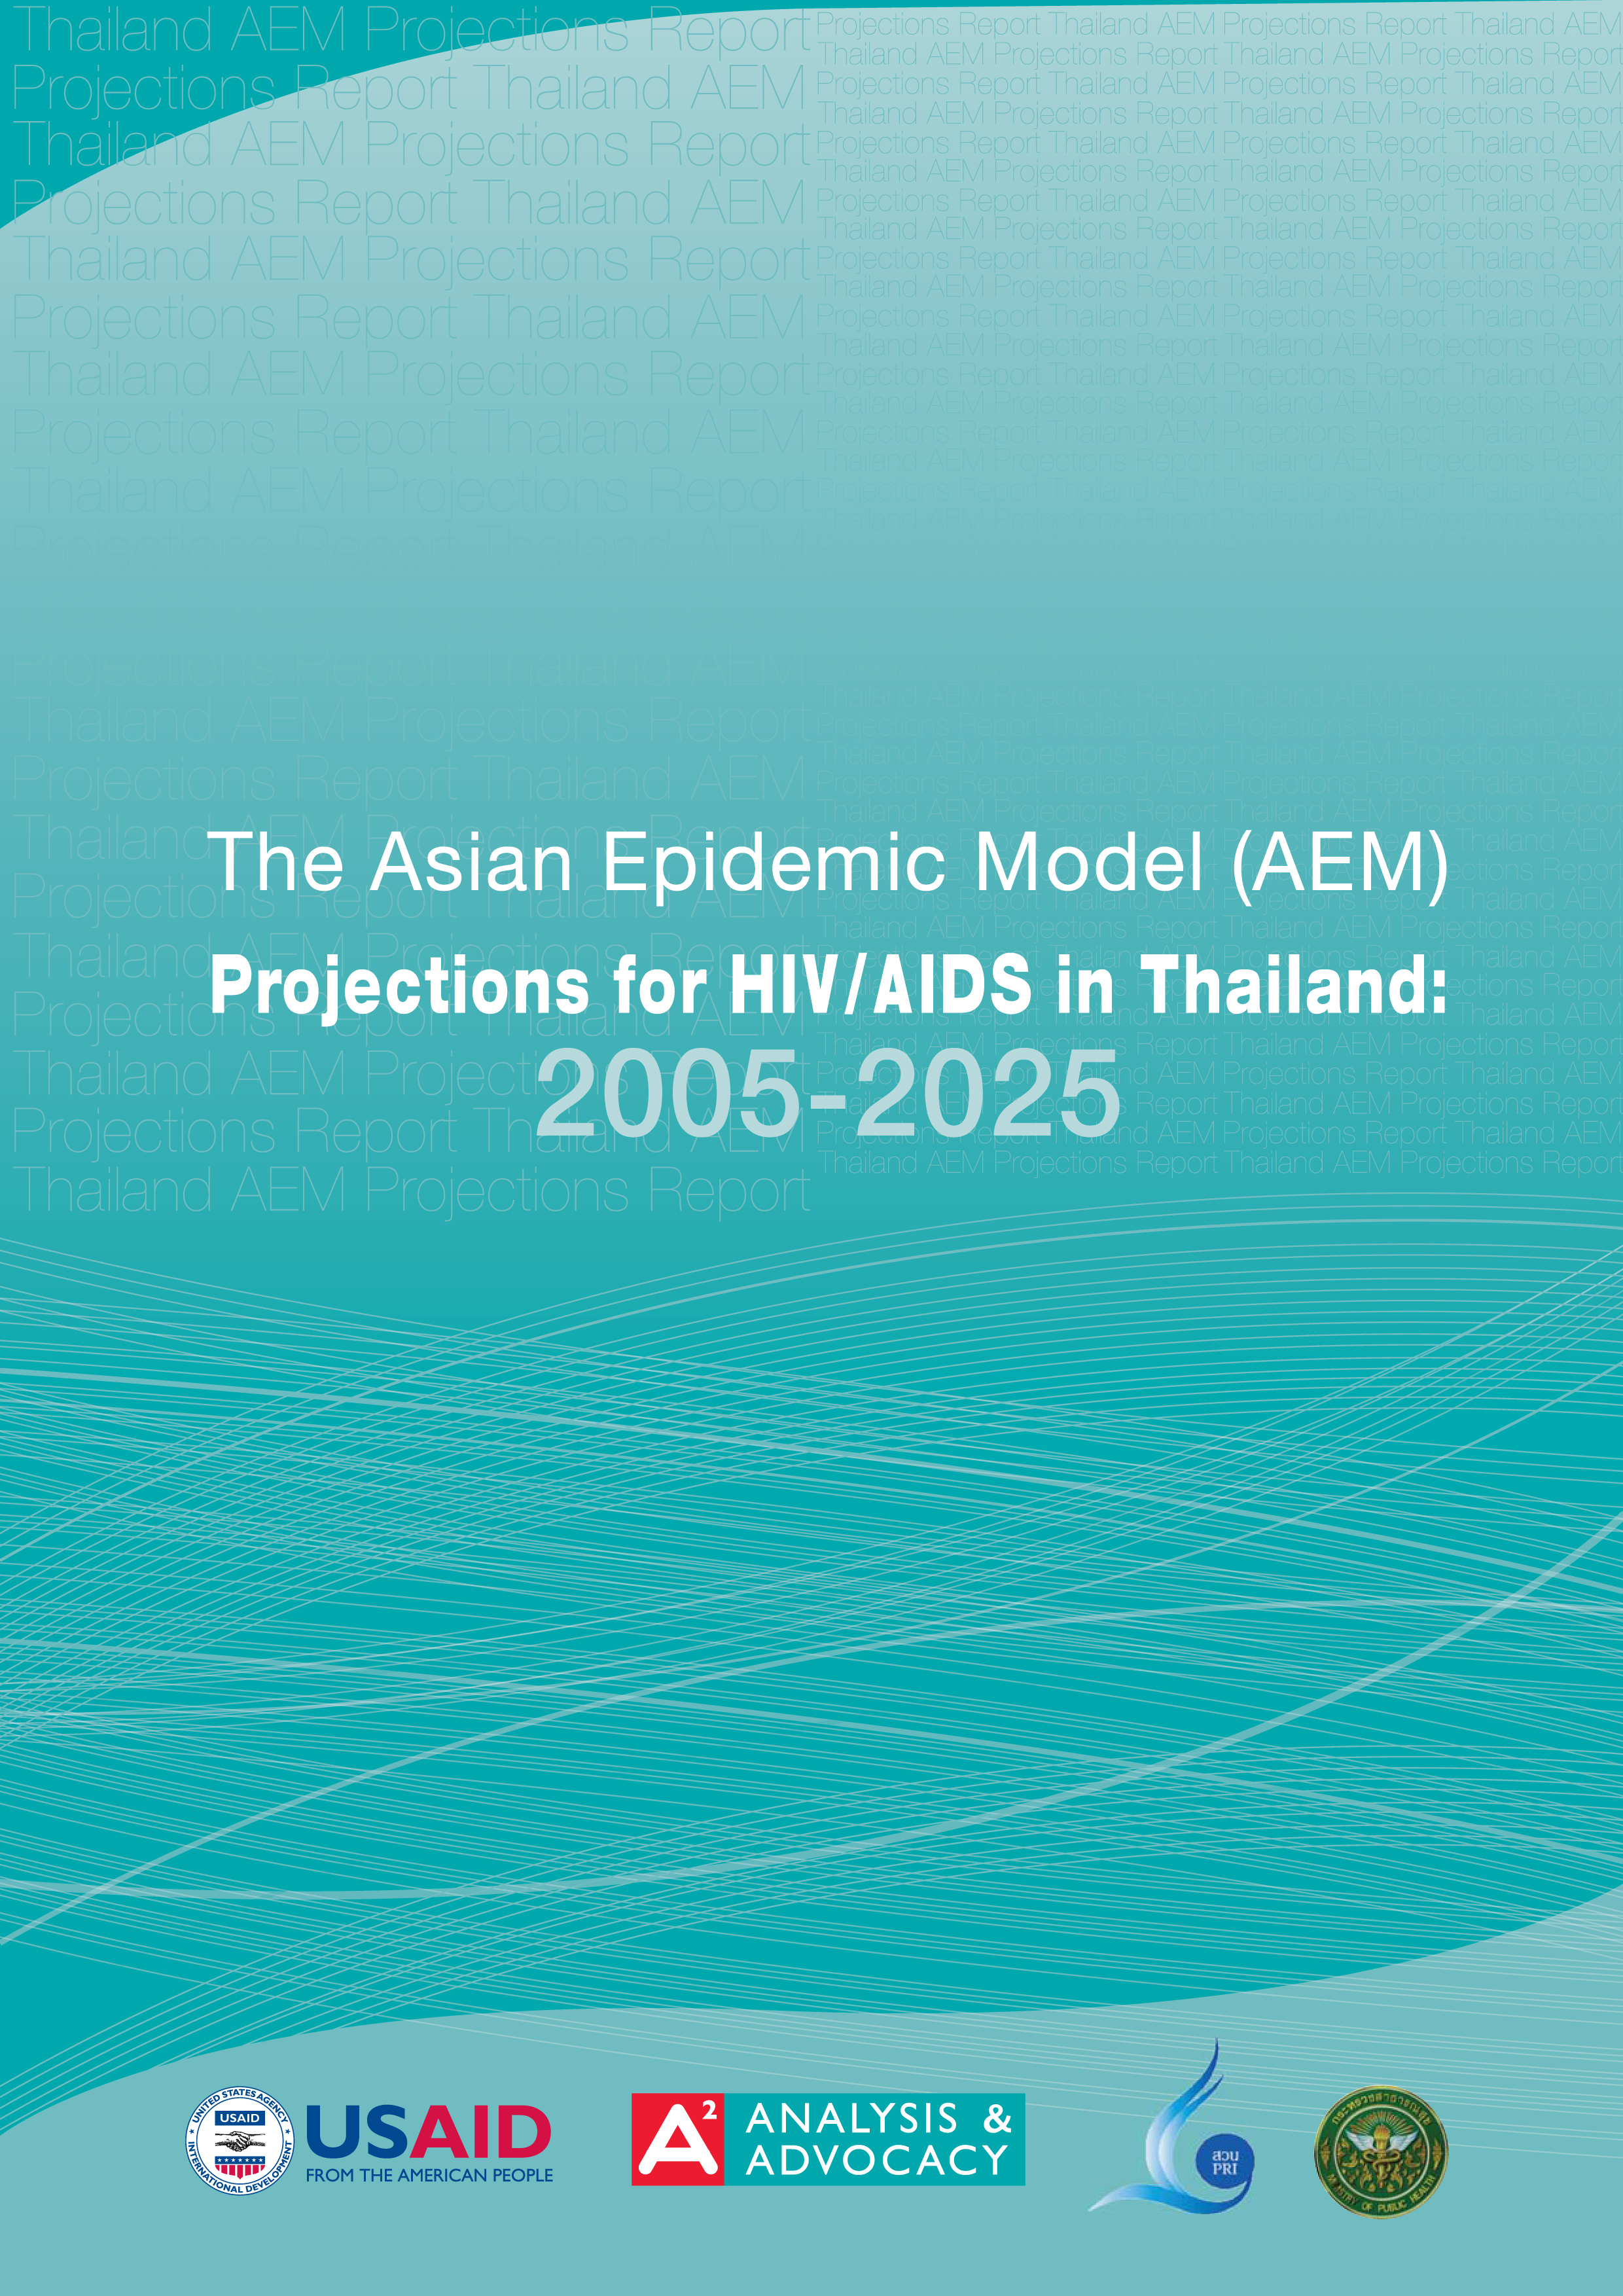 The Asian Epidemic Model Projections for HIV/AIDS in Thailand: 2005-2025